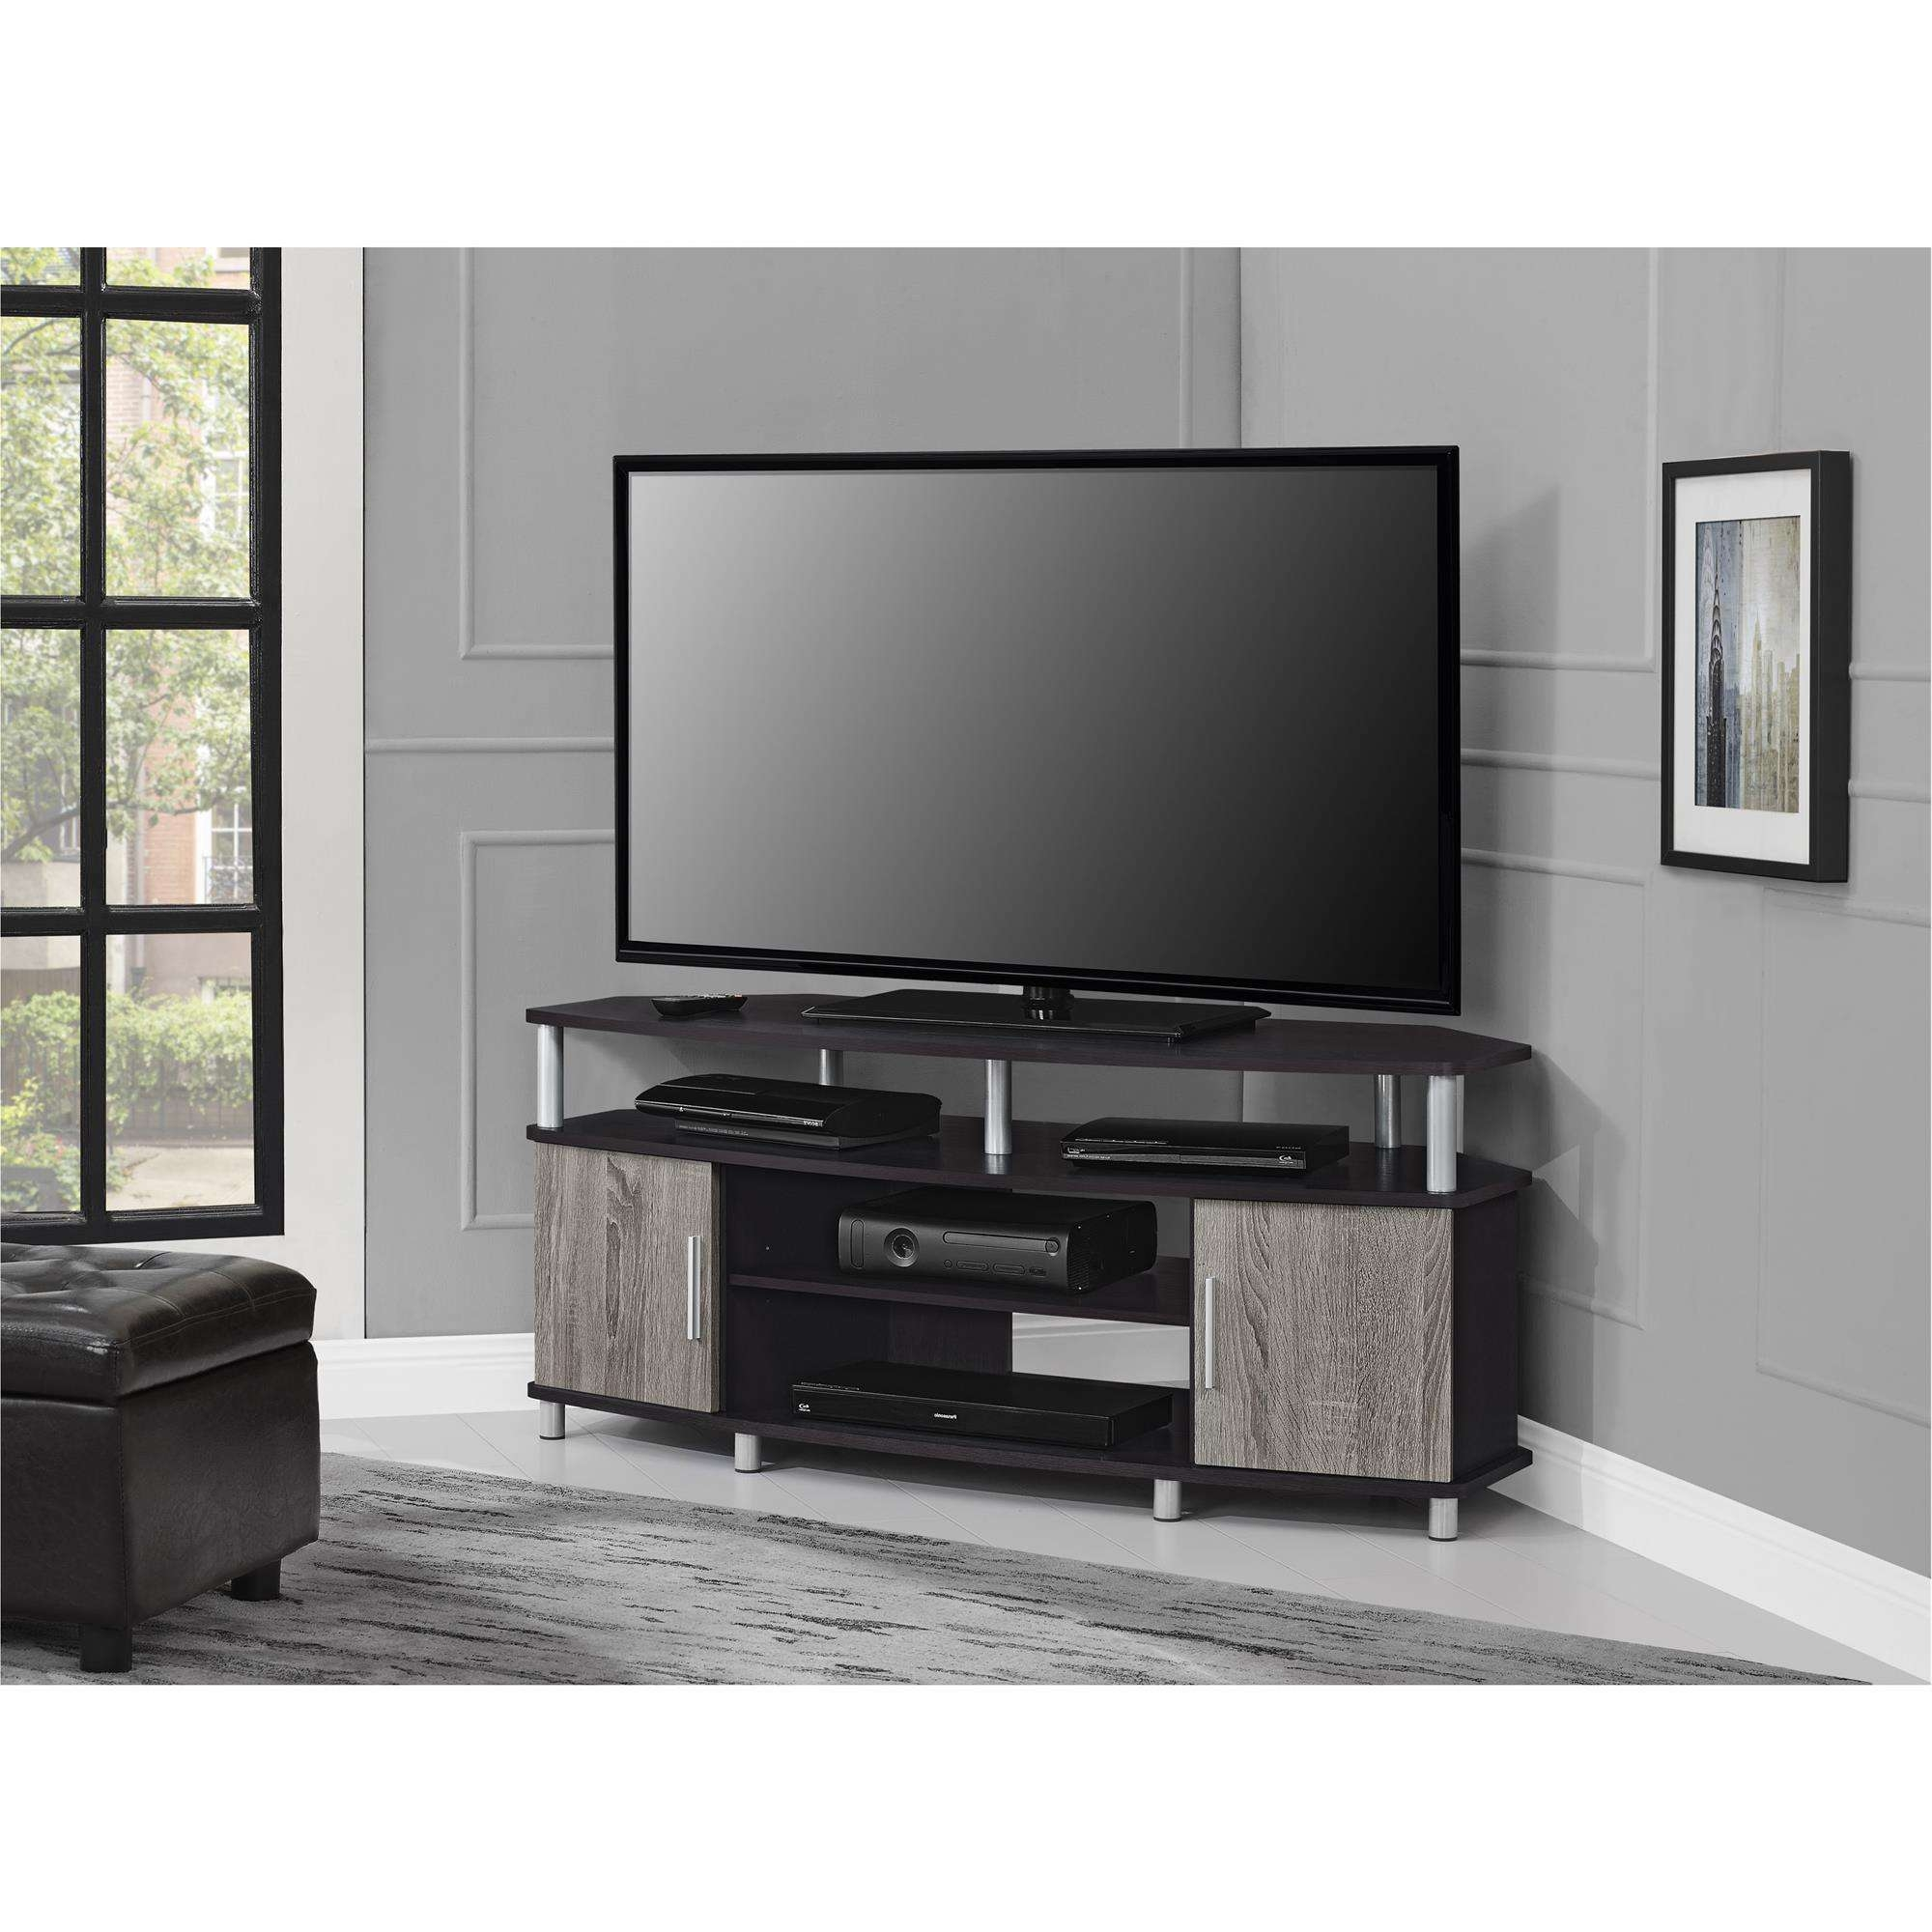 "Ameriwood Home Carson Corner Tv Stand For Tvs Up To 50"" Wide For Corner Tv Stands For 50 Inch Tv (View 18 of 20)"